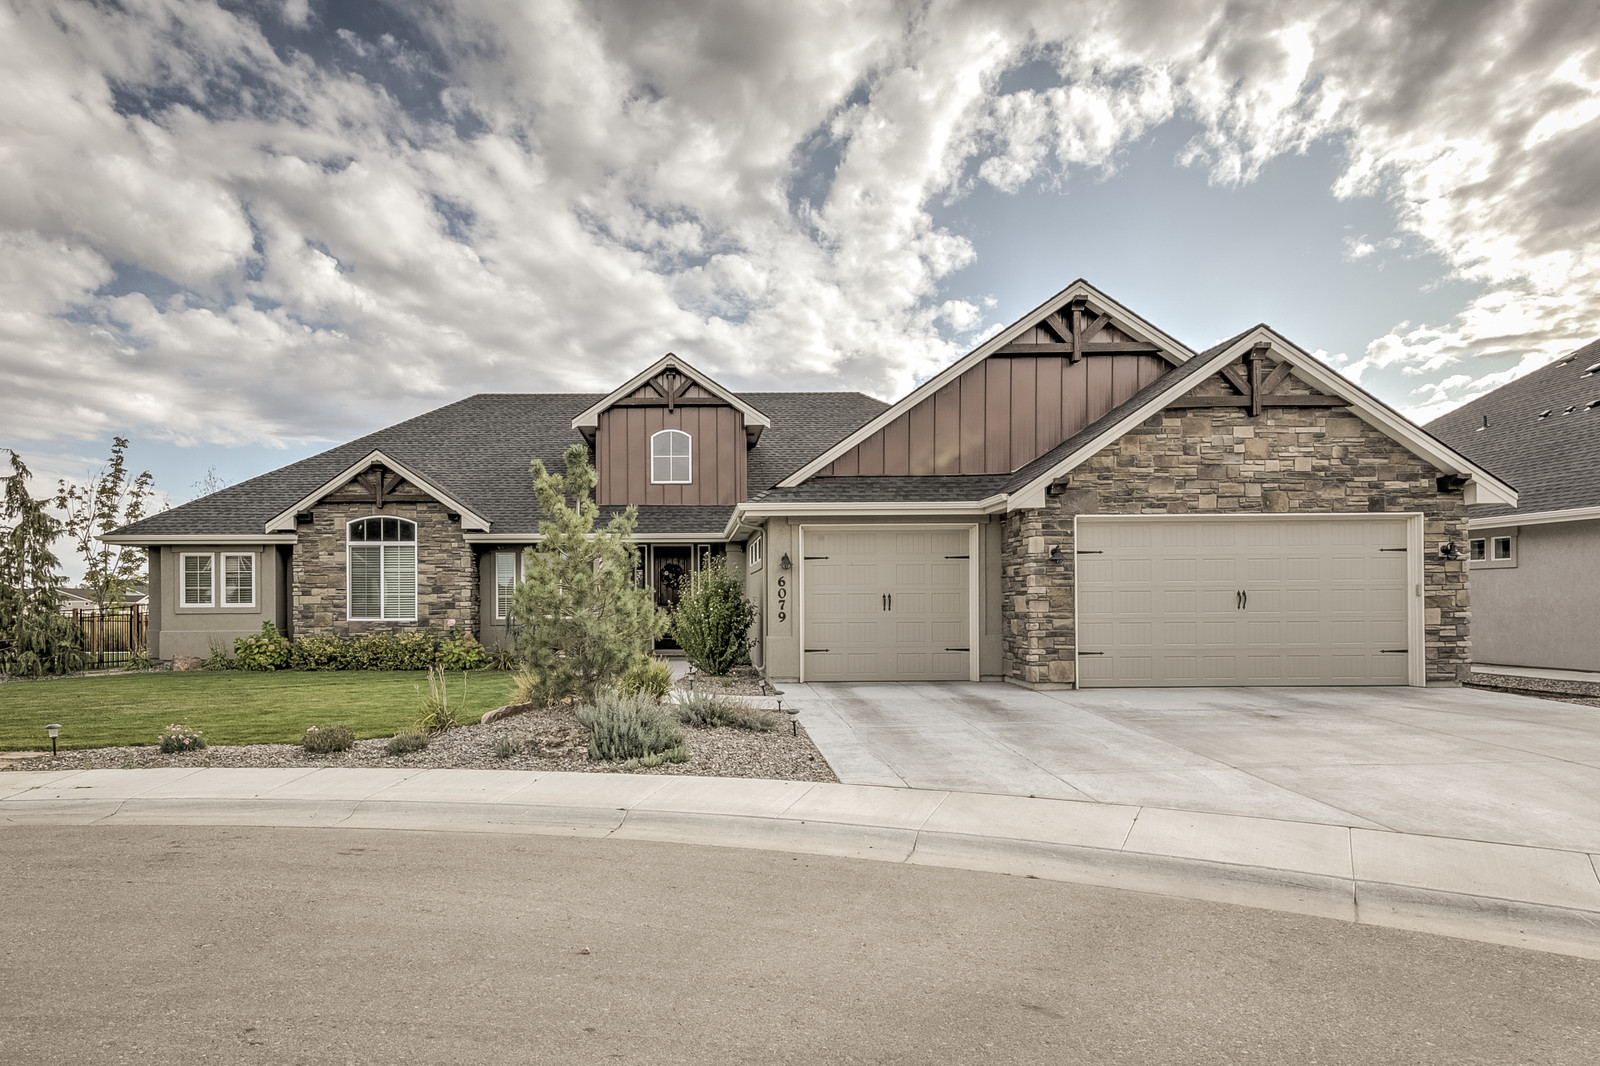 Eagle Idaho Home for Sale  at Legacy on 6709 Biathlon